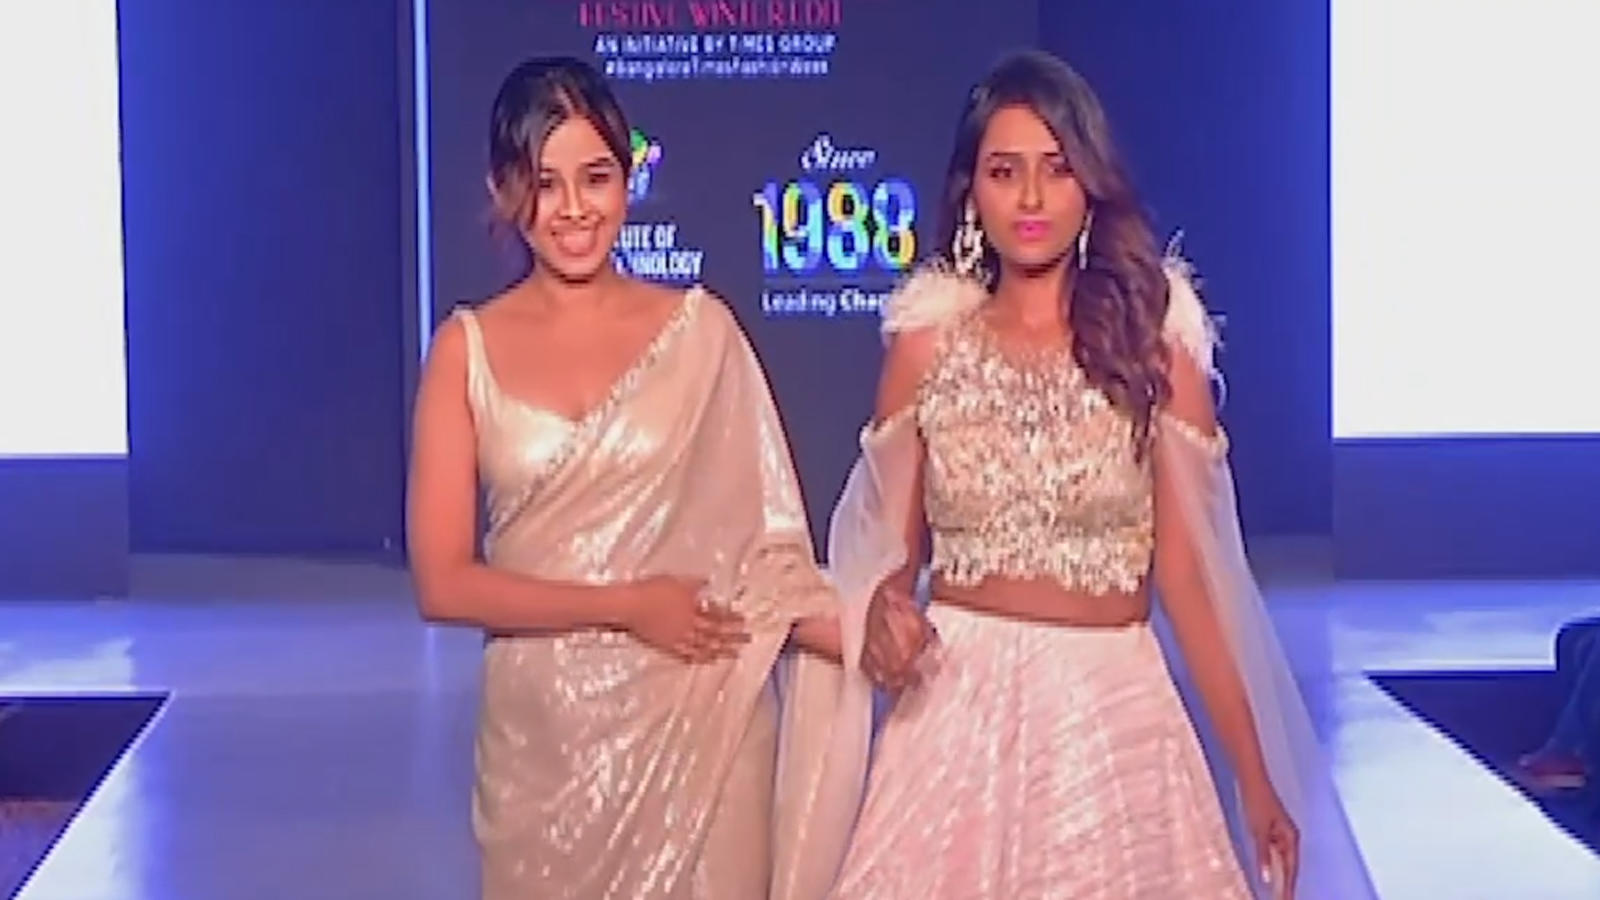 Showcasing Collection Of Jd Institute Of Fashion Technology At Bgtfw 2019 Lifestyle Times Of India Videos